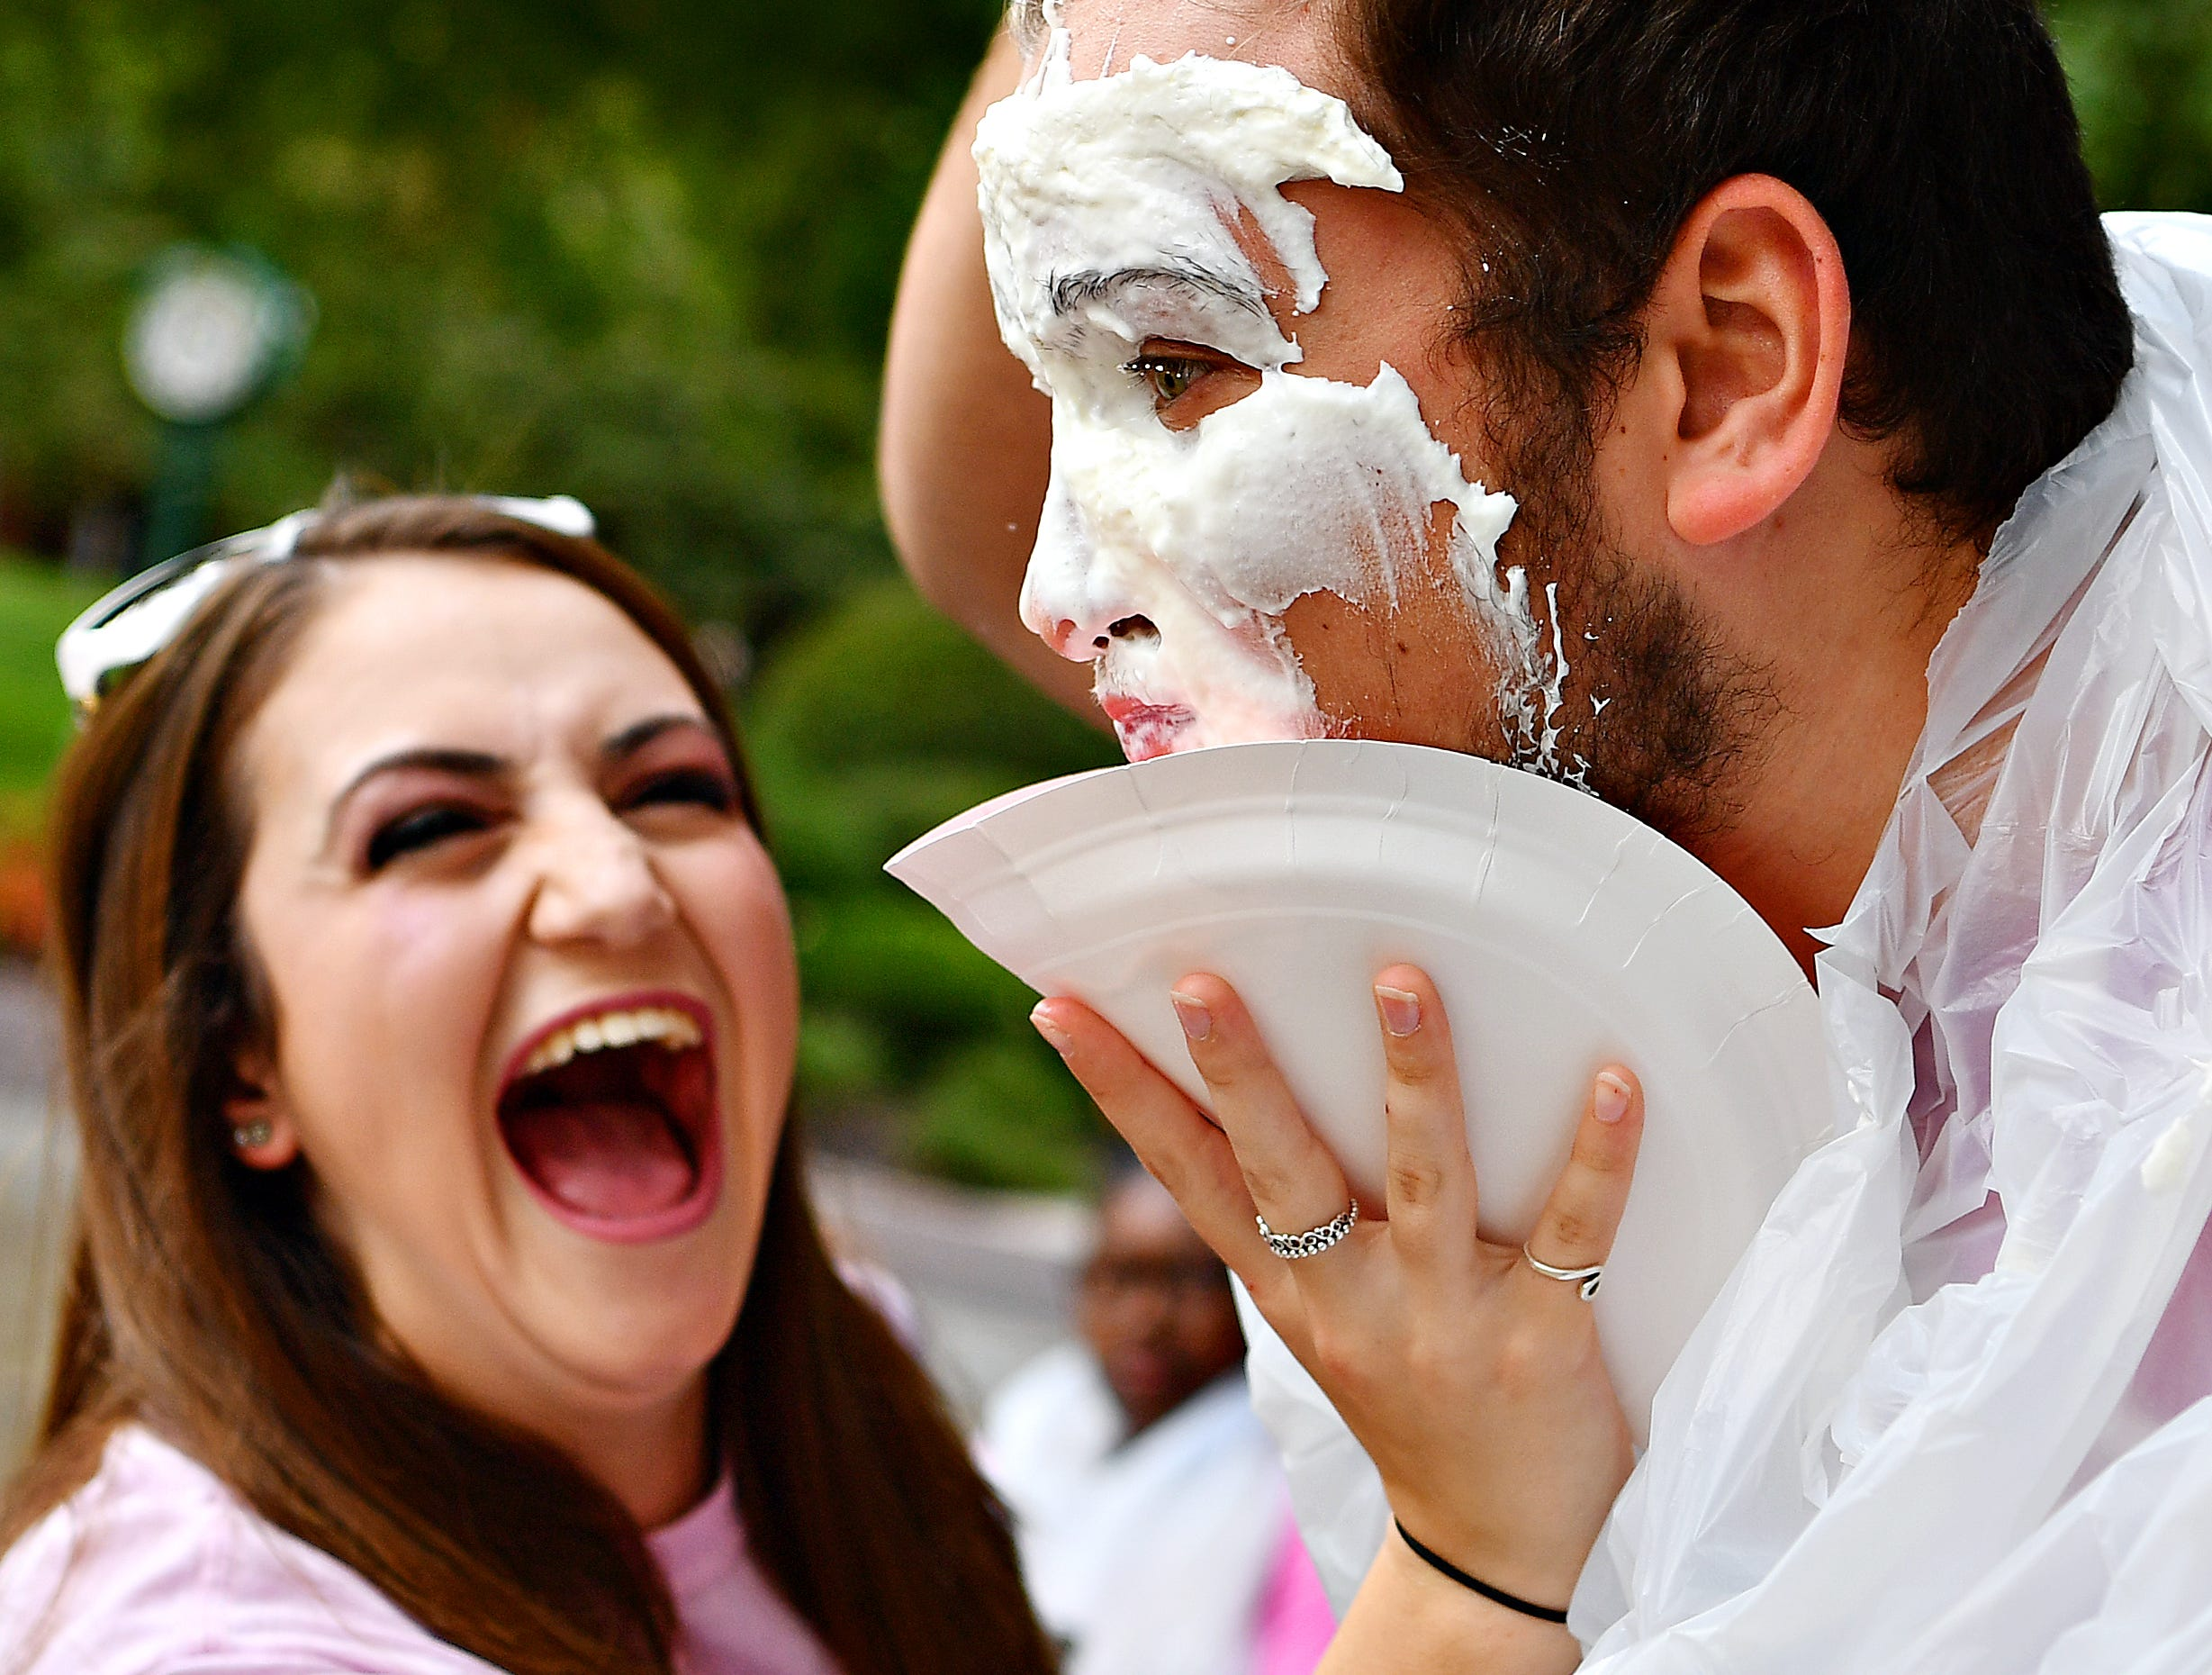 Victoria Cox, left, laughs at student senate member Adam Zeigler's reaction after smashing a plate of whipped cream into his face as York College teams up with the Feel Your Boobies Foundation to raise money in support of breast cancer research during Breast Cancer Awareness Month at York College of Pennsylvania in Spring Garden Township, Wednesday, Oct. 10, 2018. Dawn J. Sagert photo